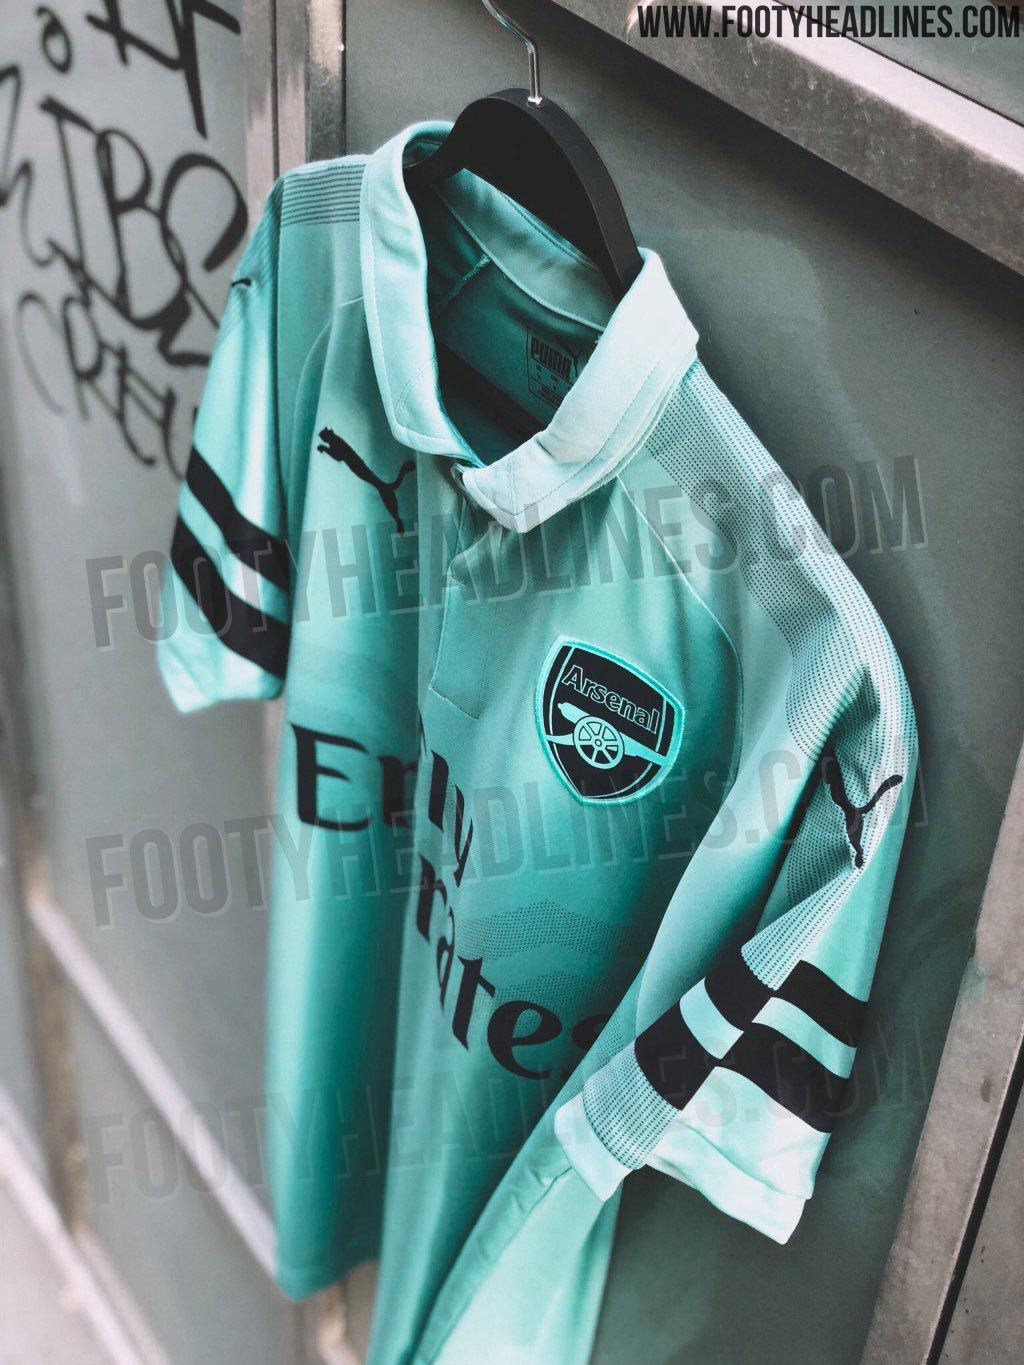 24ab5e0b501 Arsenal 18-19 Third Kit Leaked - Footy Headlines | jersey | Arsenal ...